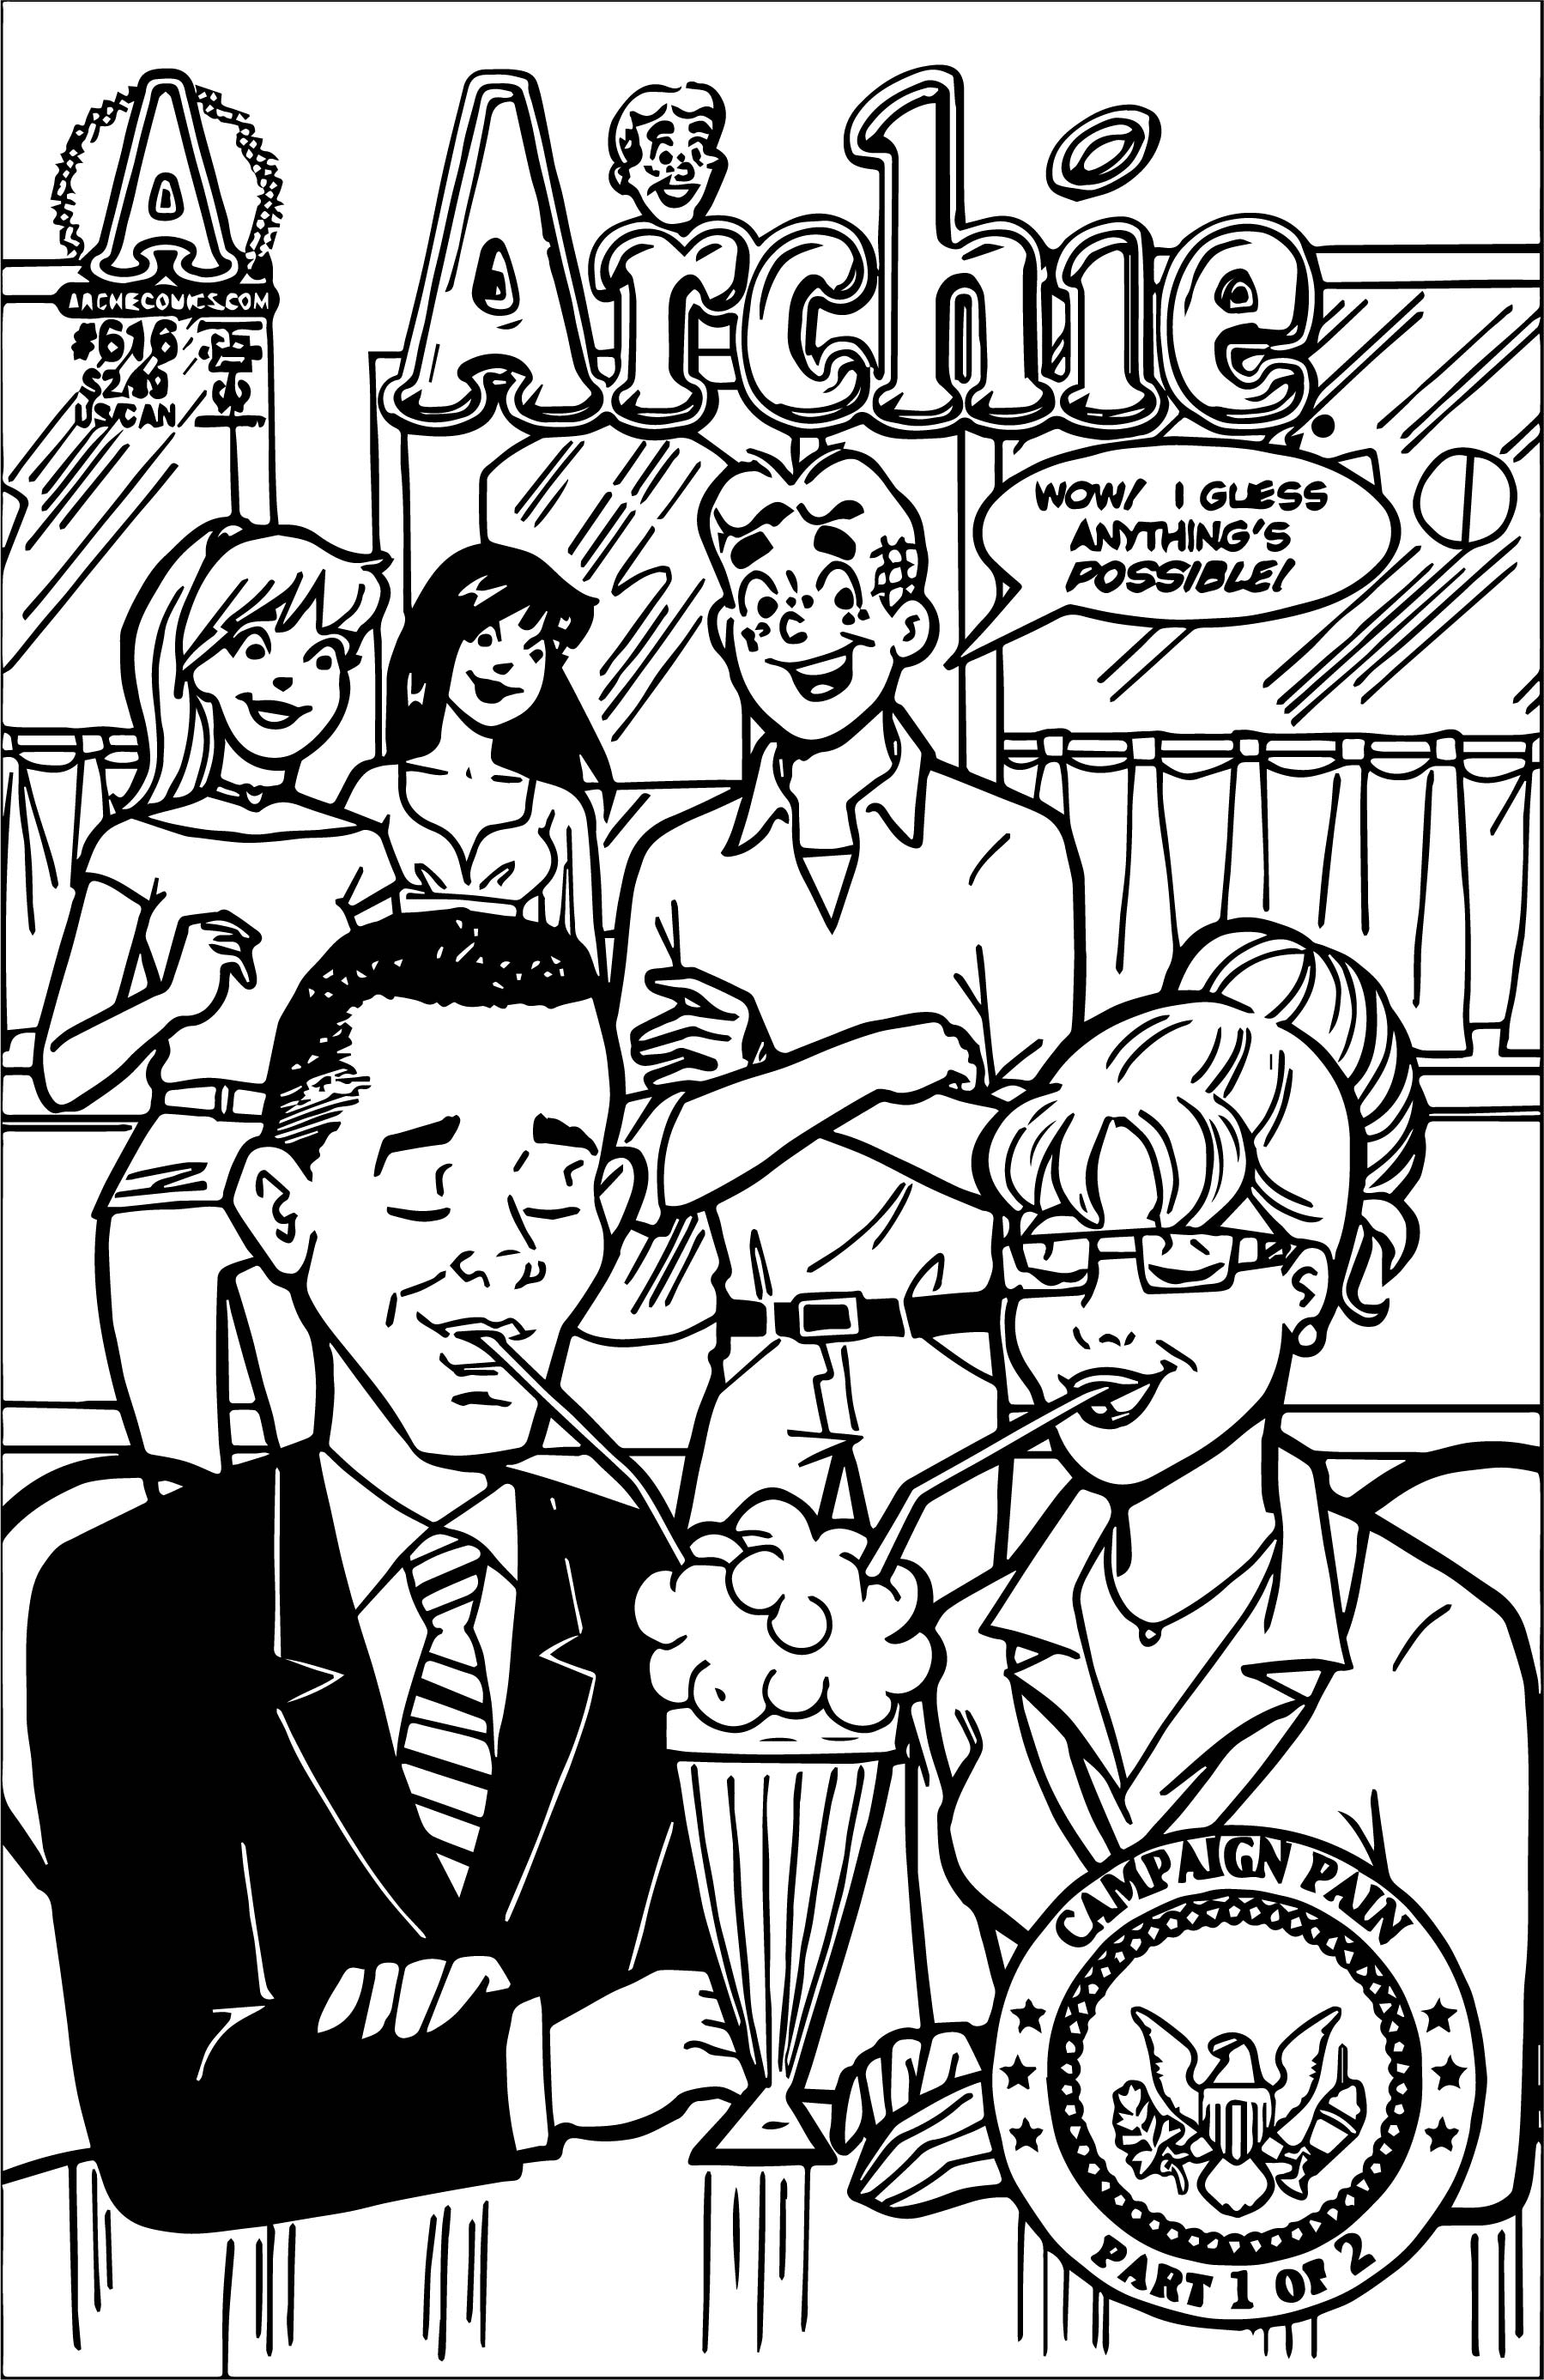 archie coloring pages - archie palin obama issue coloring page